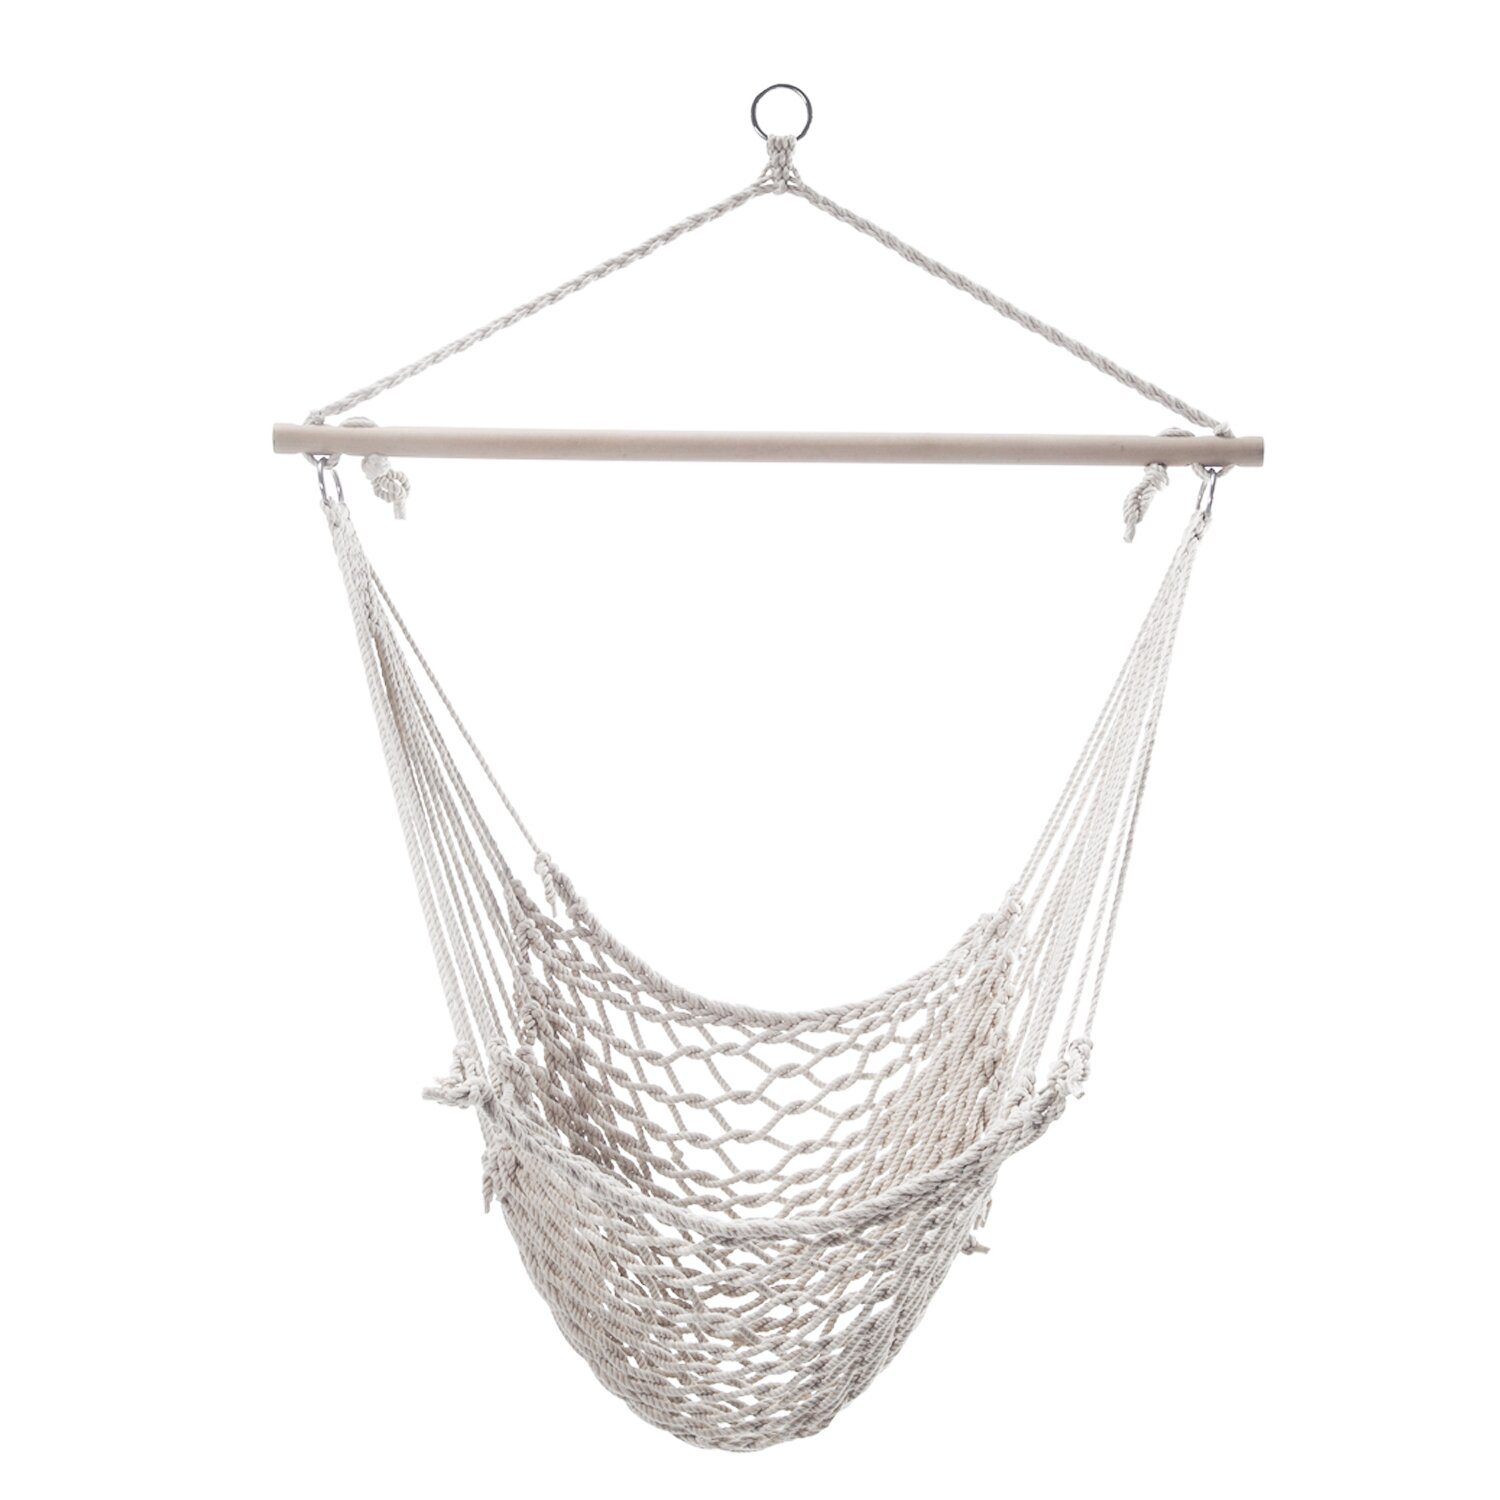 Adecotrading Woven Rope Tree Hanging Suspended Indoor